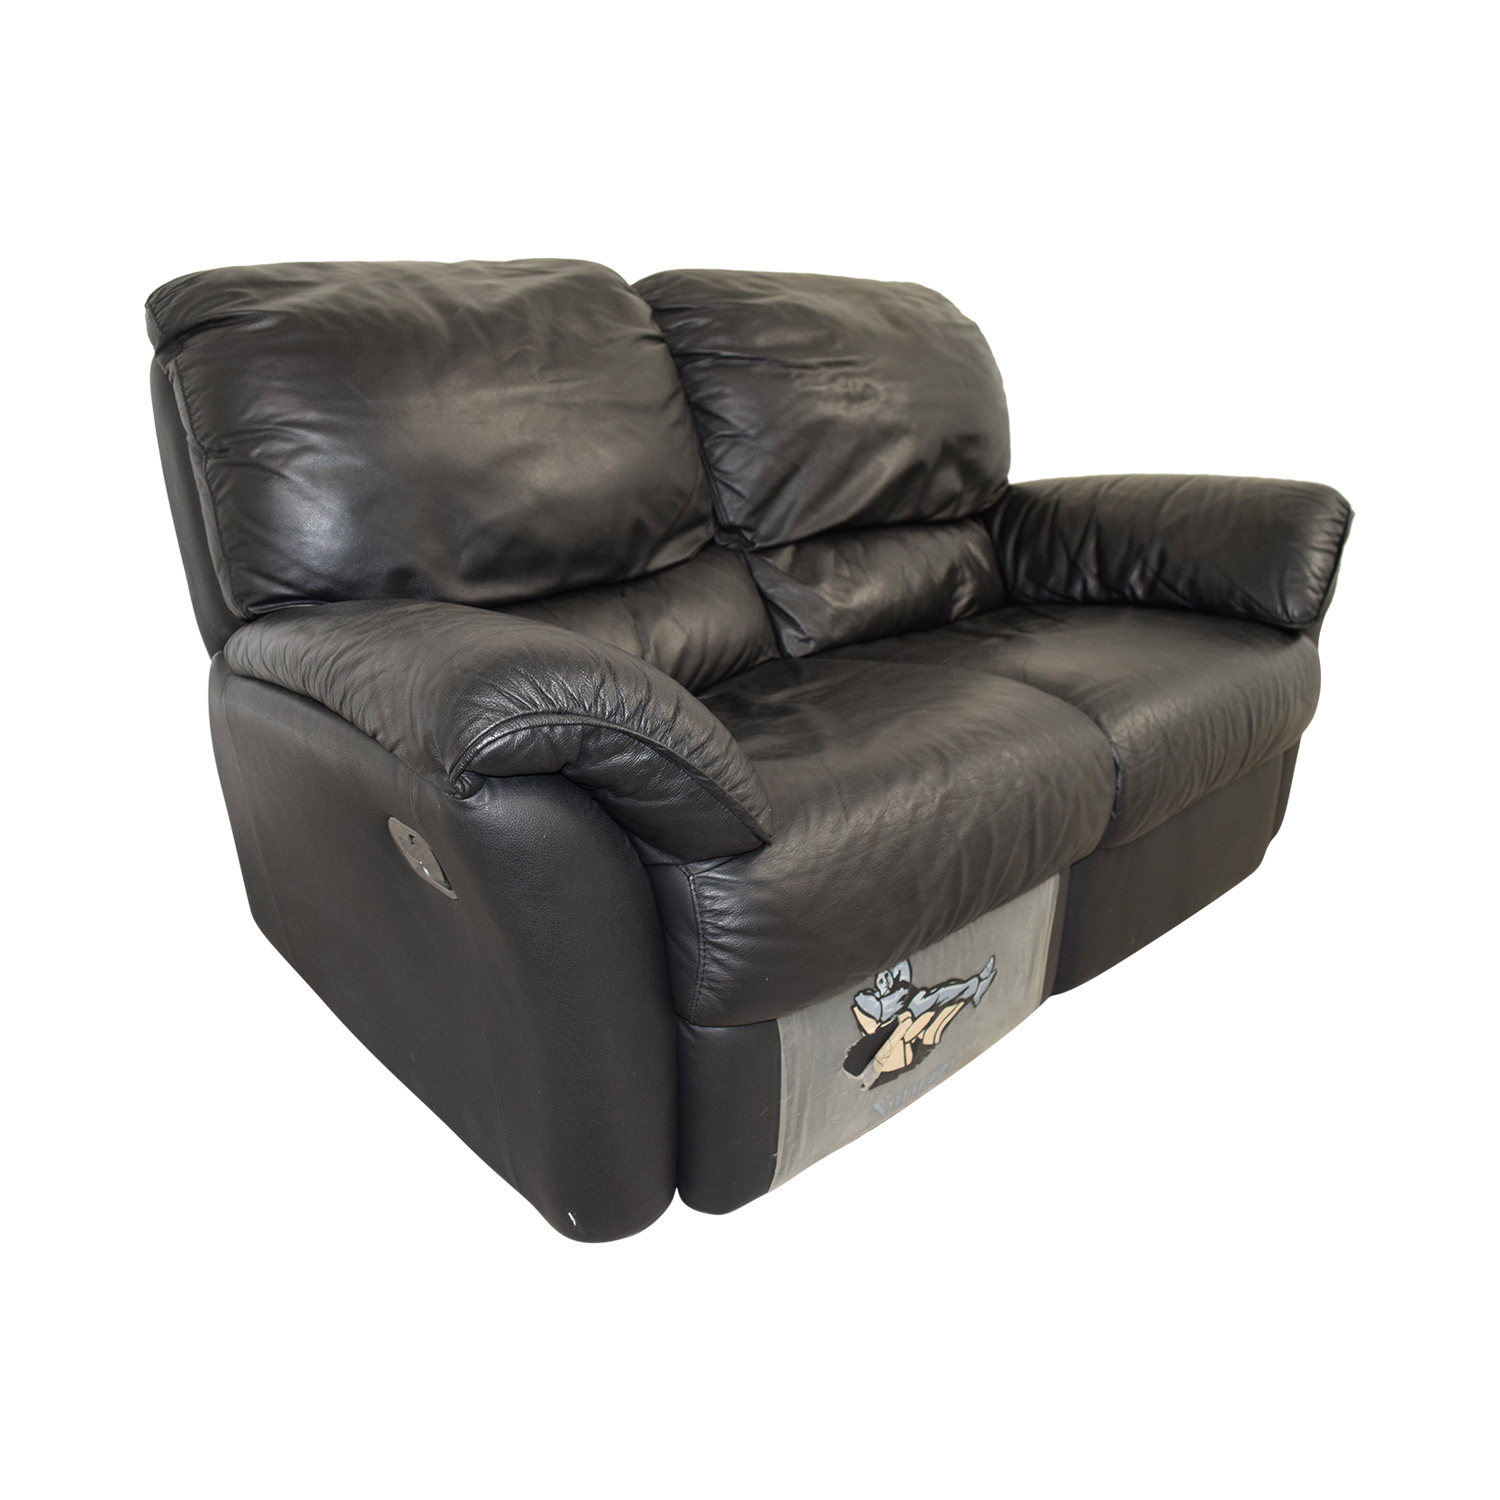 84 Off Natuzzi Natuzzi Leather Recliner Loveseat Sofas